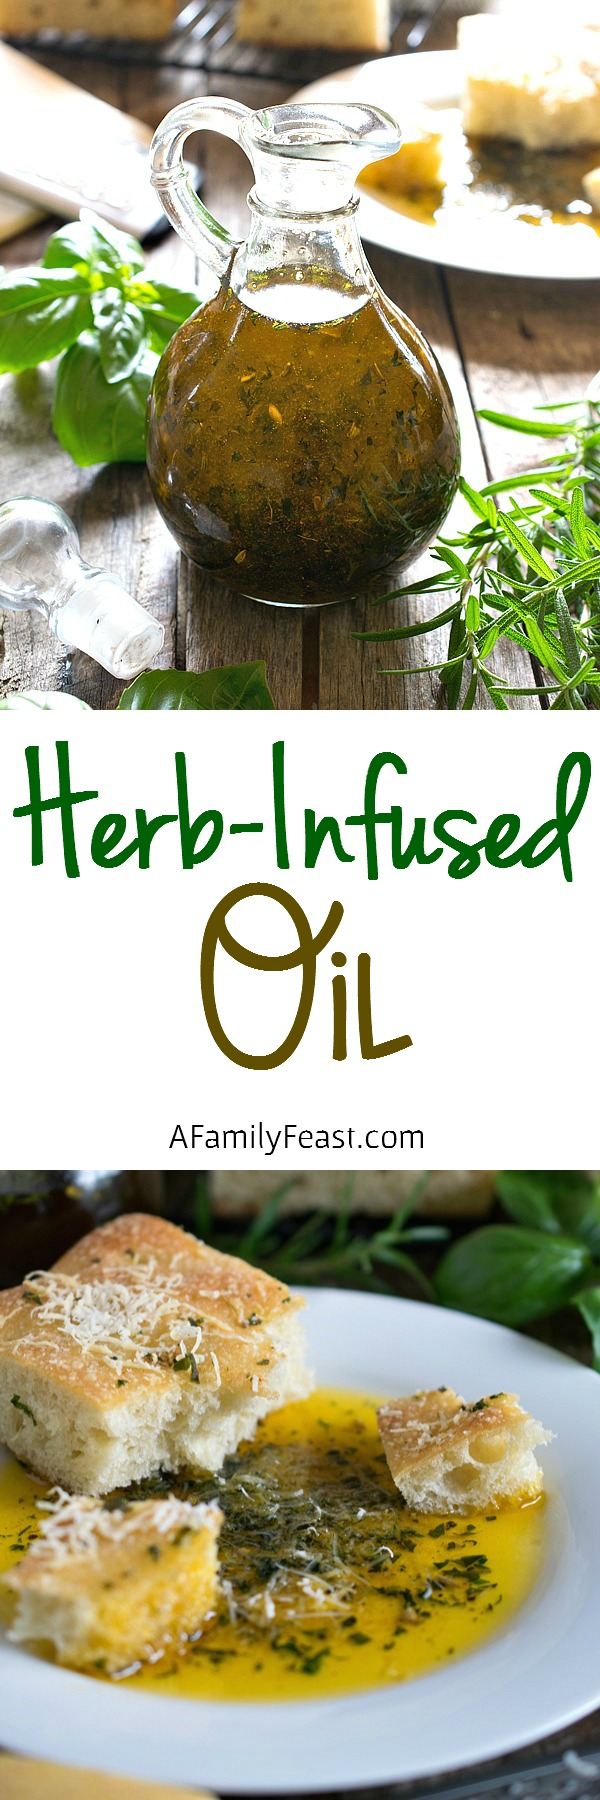 Herb-Infused Oils - Easy to make and versatile. Use as a dipping sauce or for cooking.